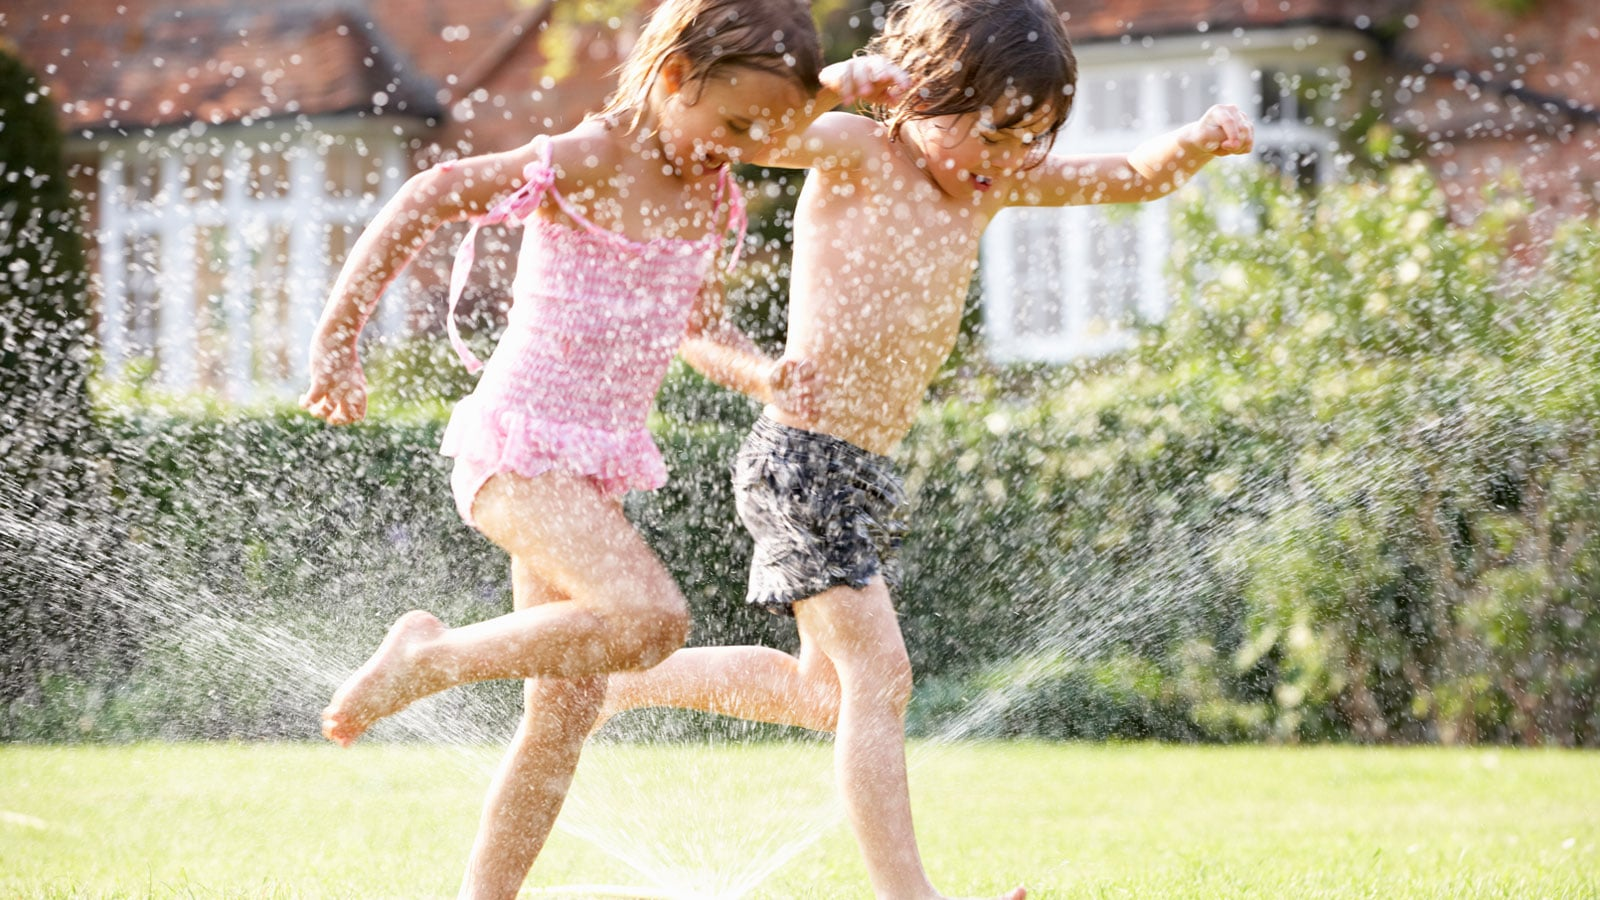 Hydration tips for kids using some non-toxic and natural products